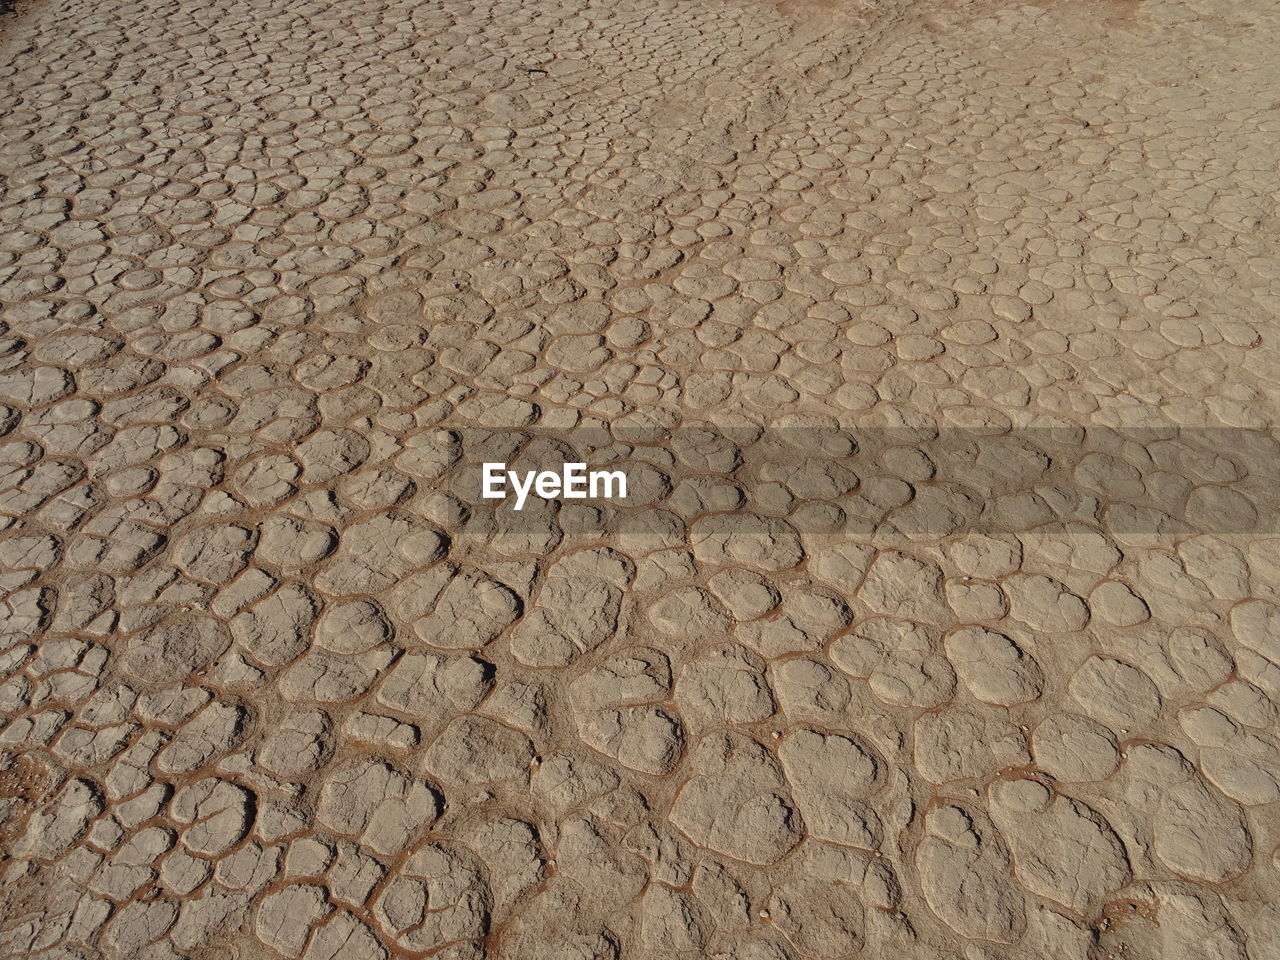 arid climate, cracked, drought, desert, backgrounds, textured, dry, pattern, nature, barren, full frame, mud, sand, outdoors, brown, no people, day, landscape, clay, close-up, salt - mineral